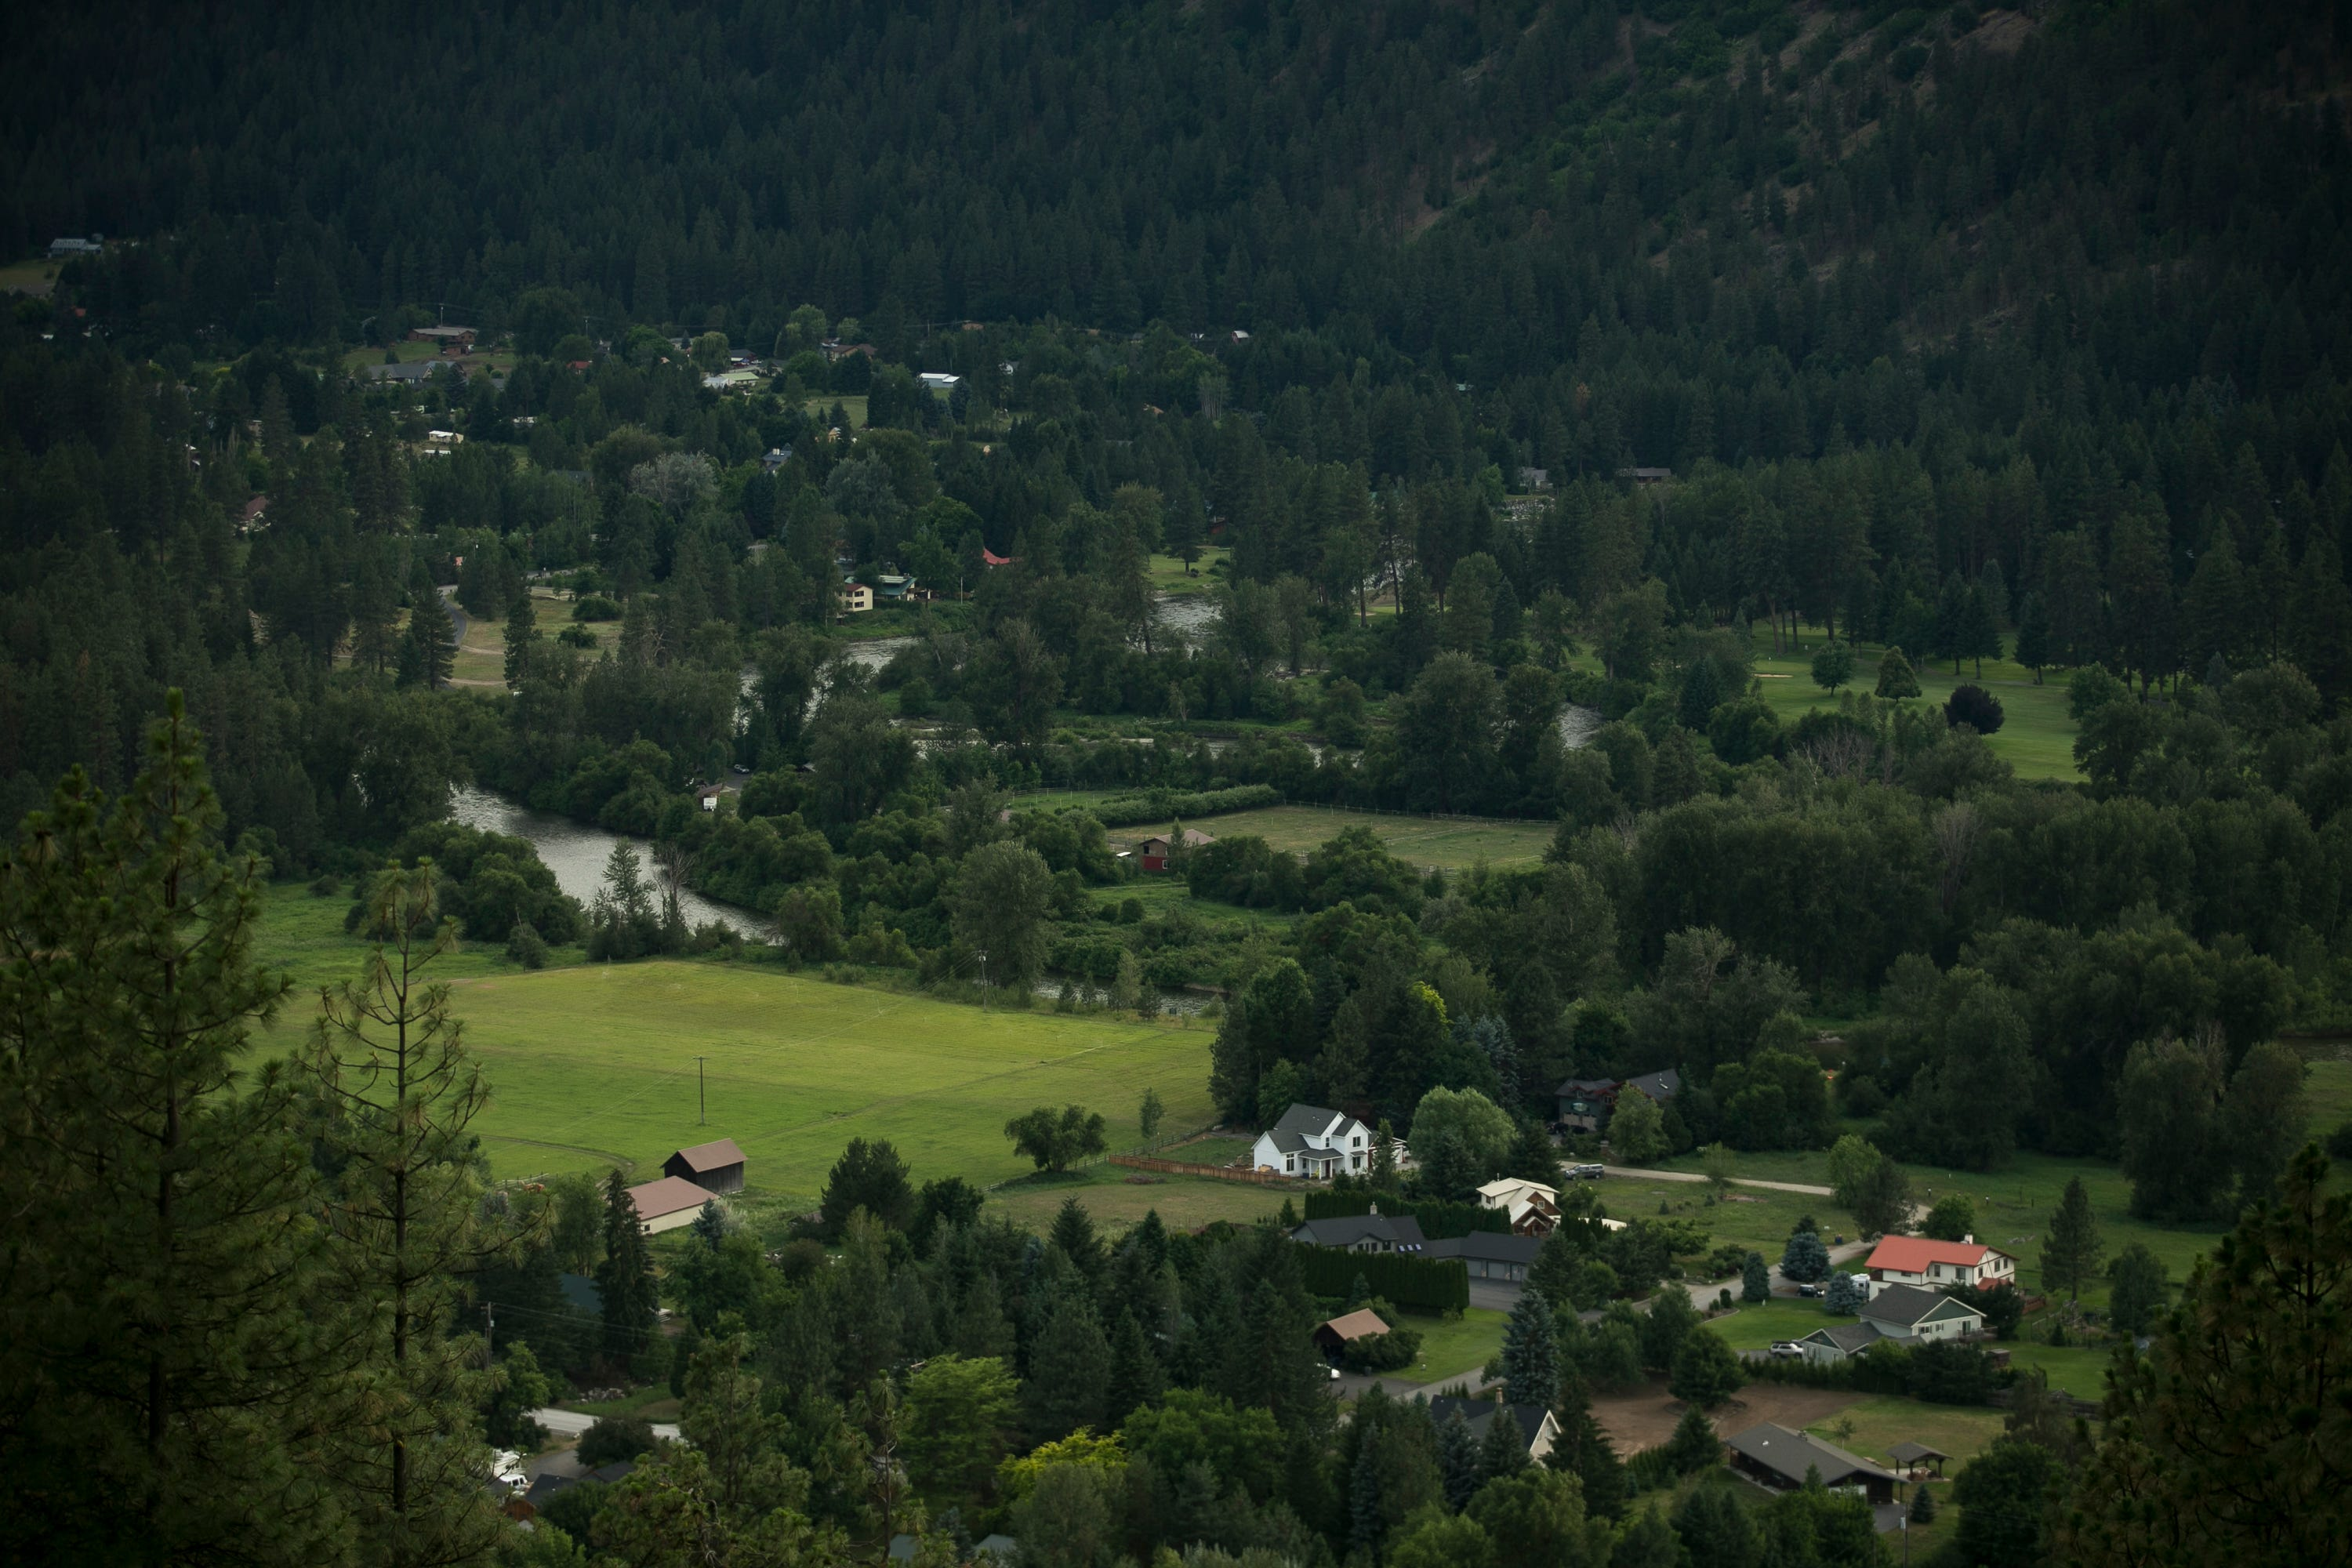 Homes sit nestled in Icicle Canyon in Leavenworth, Washington, in June 2019. Leavenworth has one of the highest fire hazard potential scores in the state.